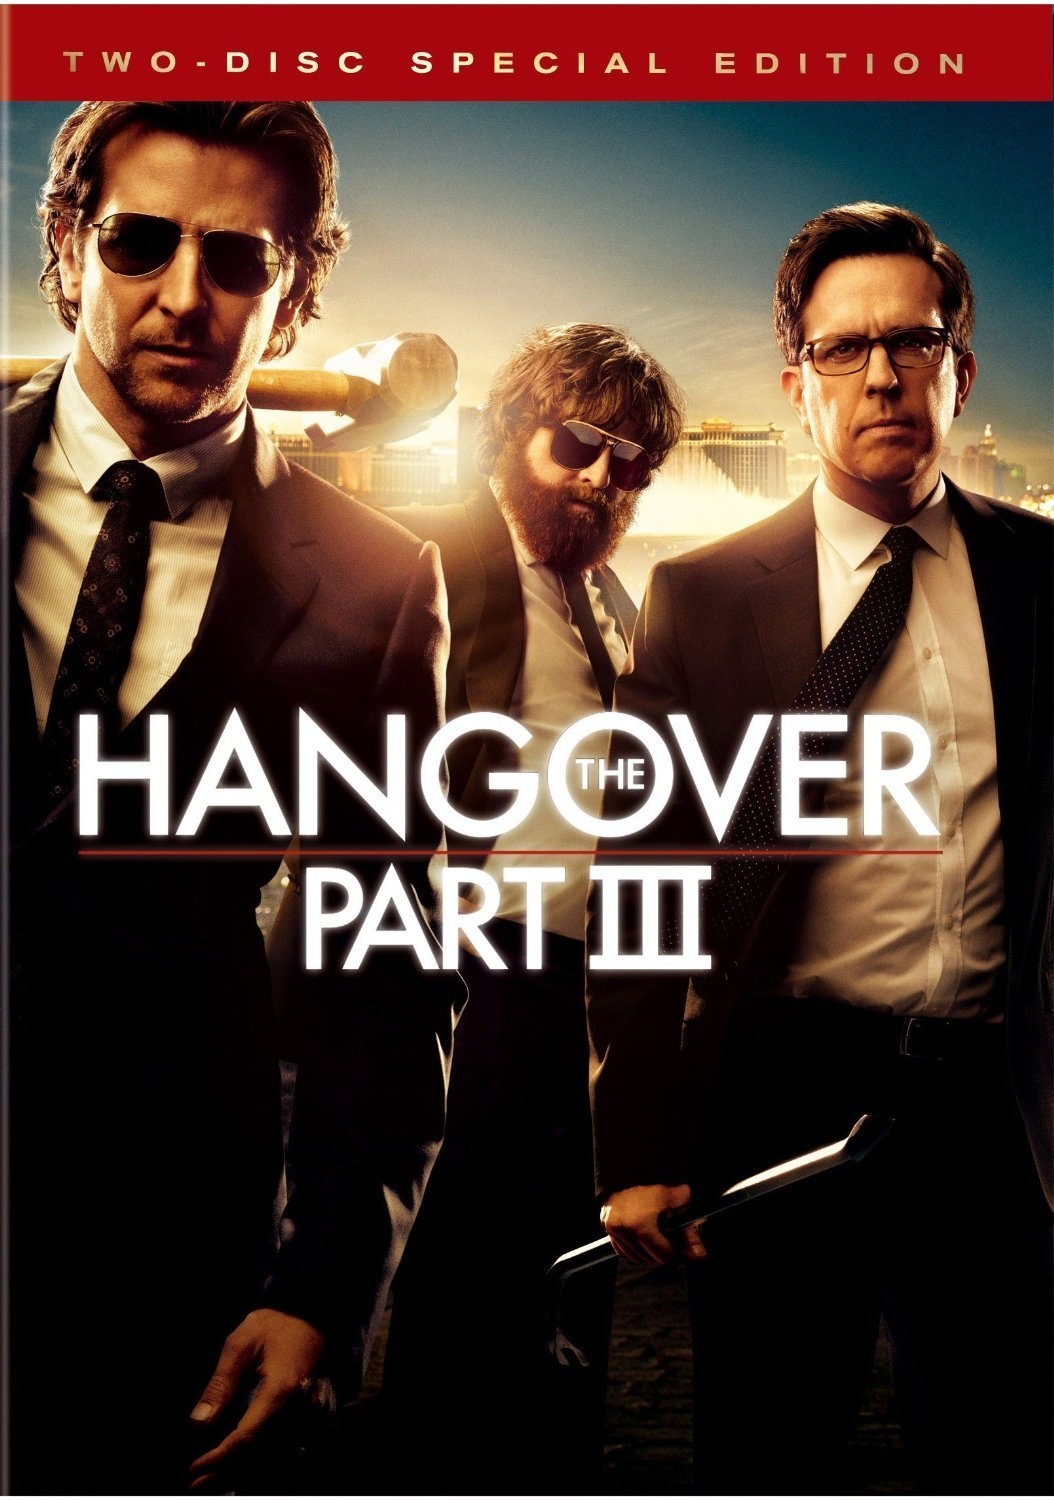 Image of The Hangover Part 3